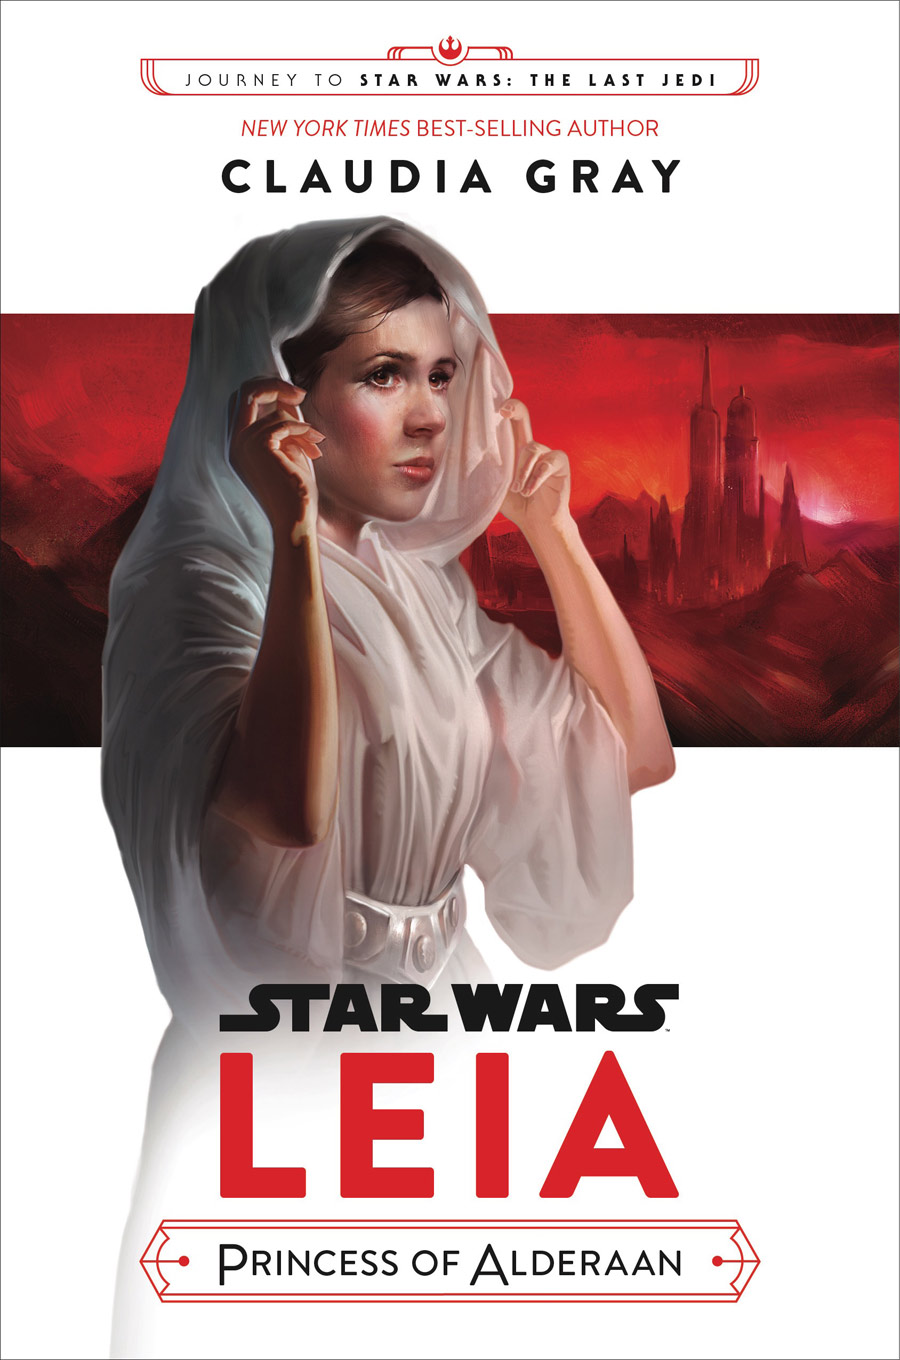 Star Wars: Leia - Princess of Alderaan